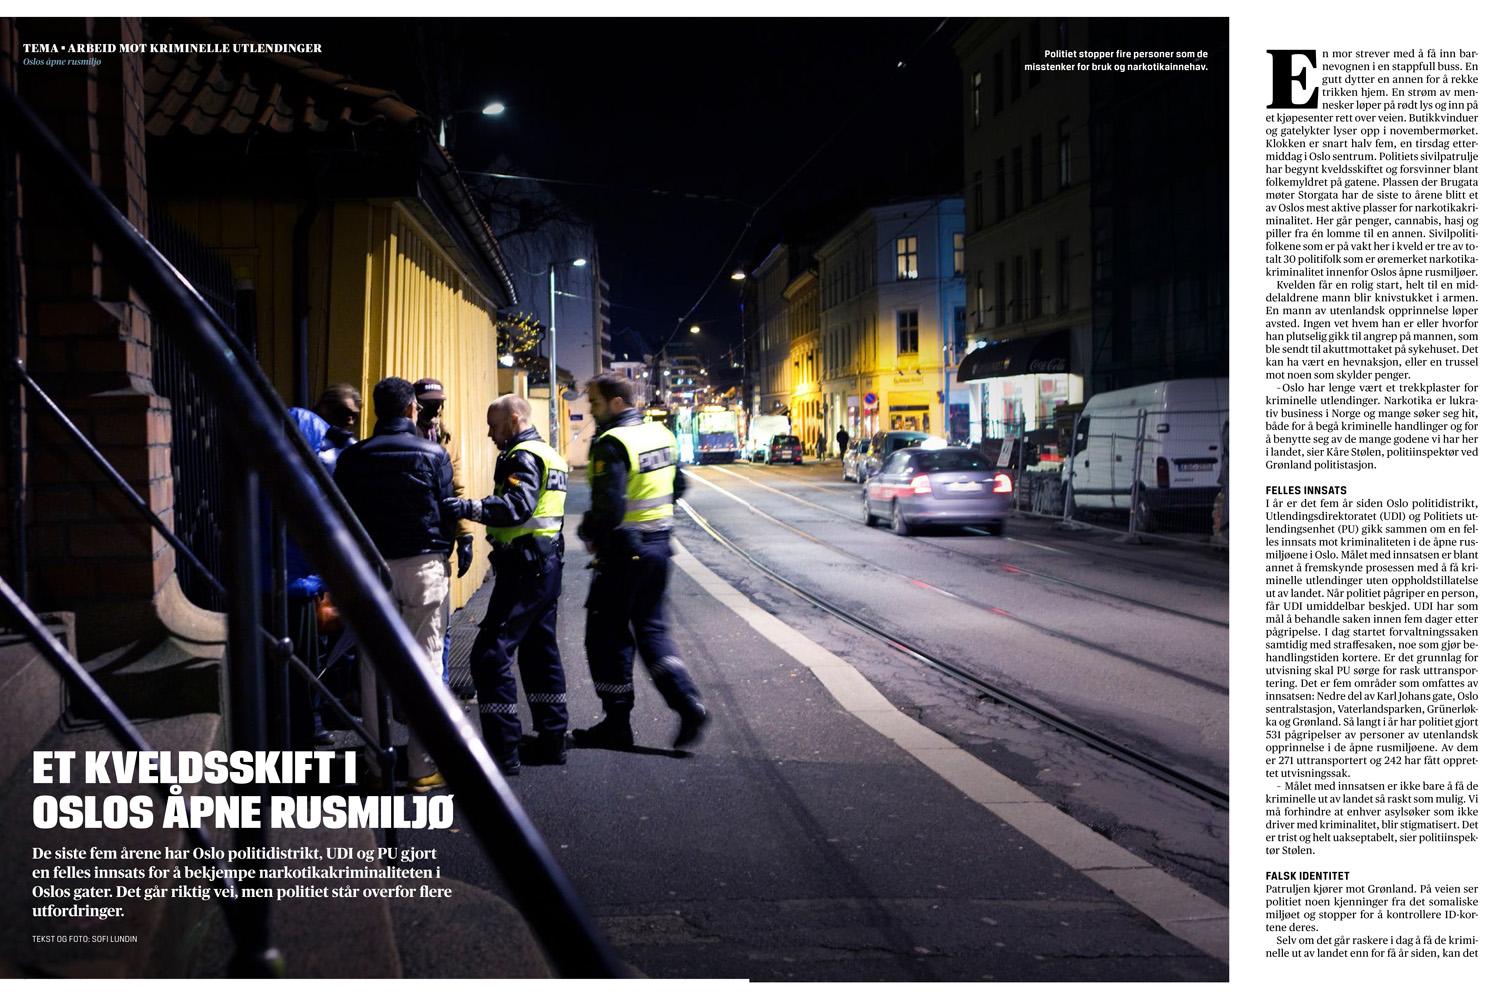 Drug trafficking in Oslo - Magasinet Norsk Politi, 2014